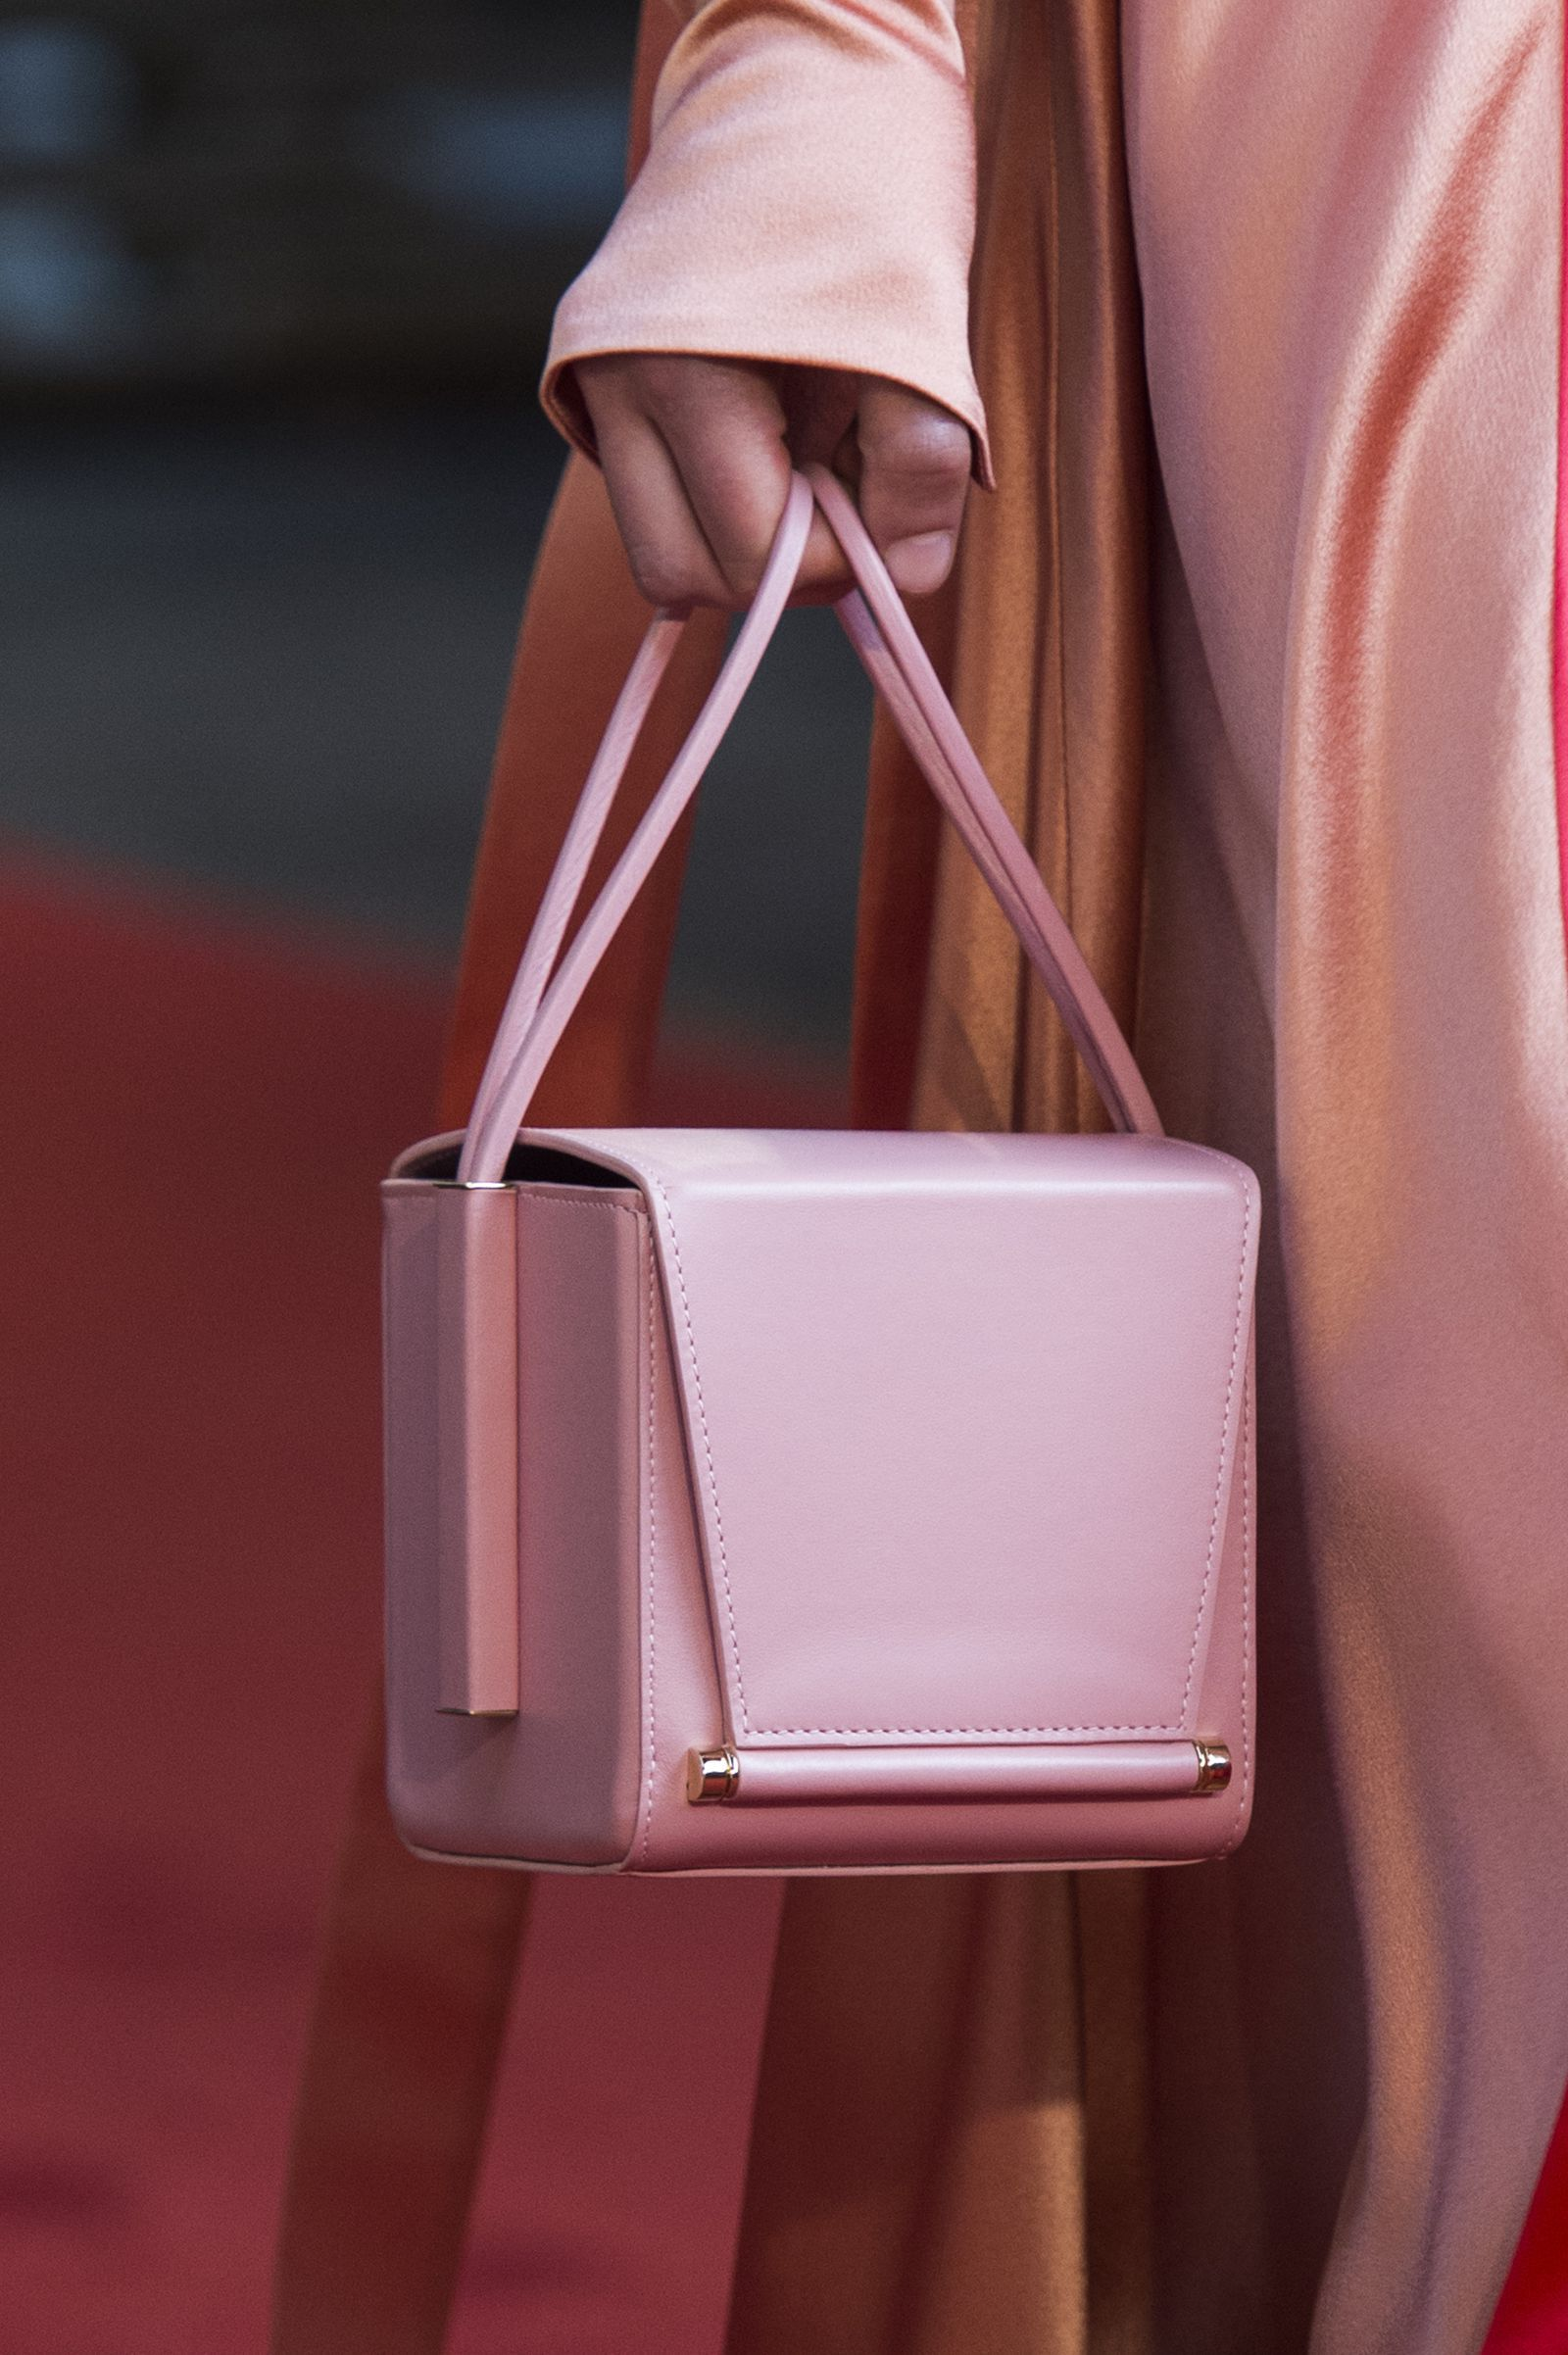 901a75d56eccc 100 bags we want from the spring summer 2019 catwalks